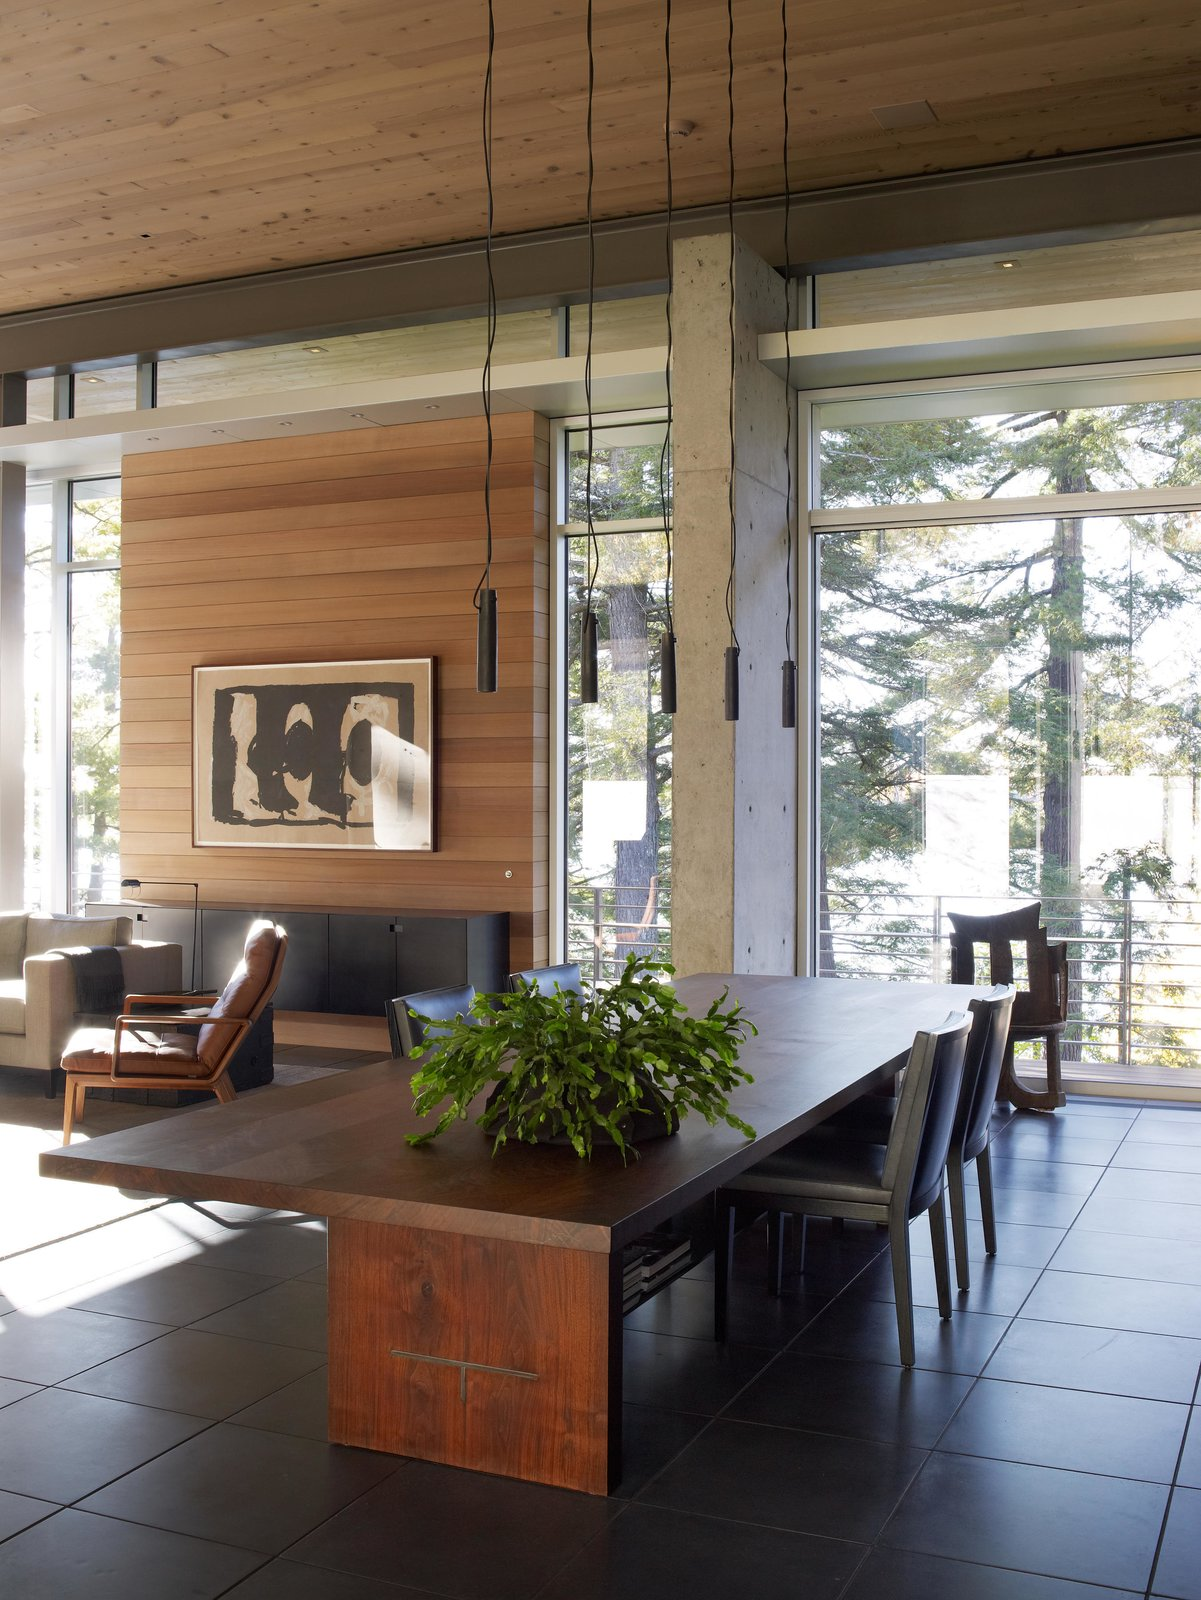 Exterior, Wood, Metal, Garden, Sofa, Ceiling Lighting, Coffee Tables, Pendant Lighting, and Dining Room Northwoods House  Northwoods House by Olson Kundig